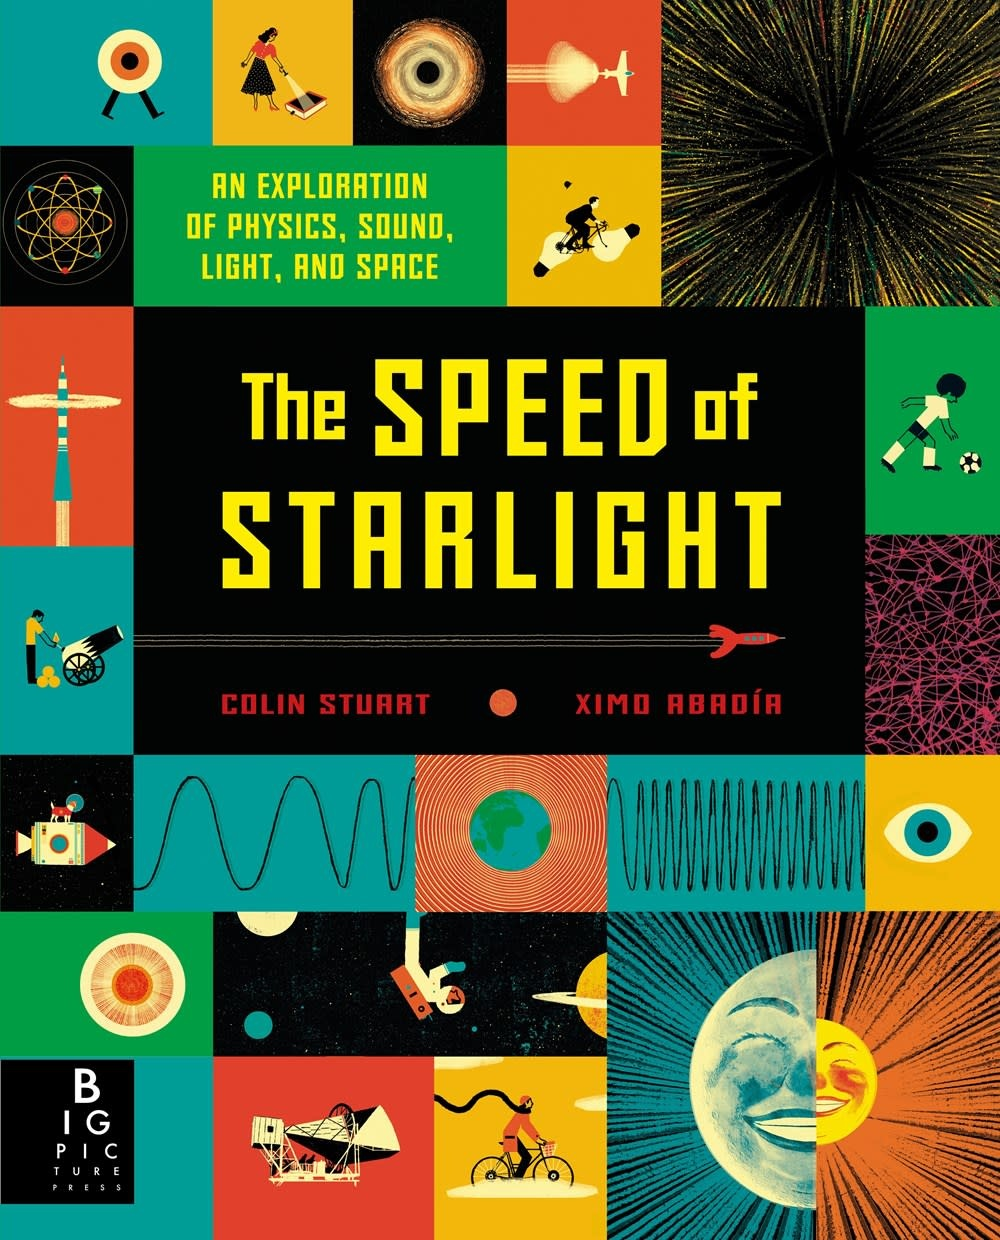 Big Picture Press The Speed of Starlight: ...Physics, Sound, Lights, & Space